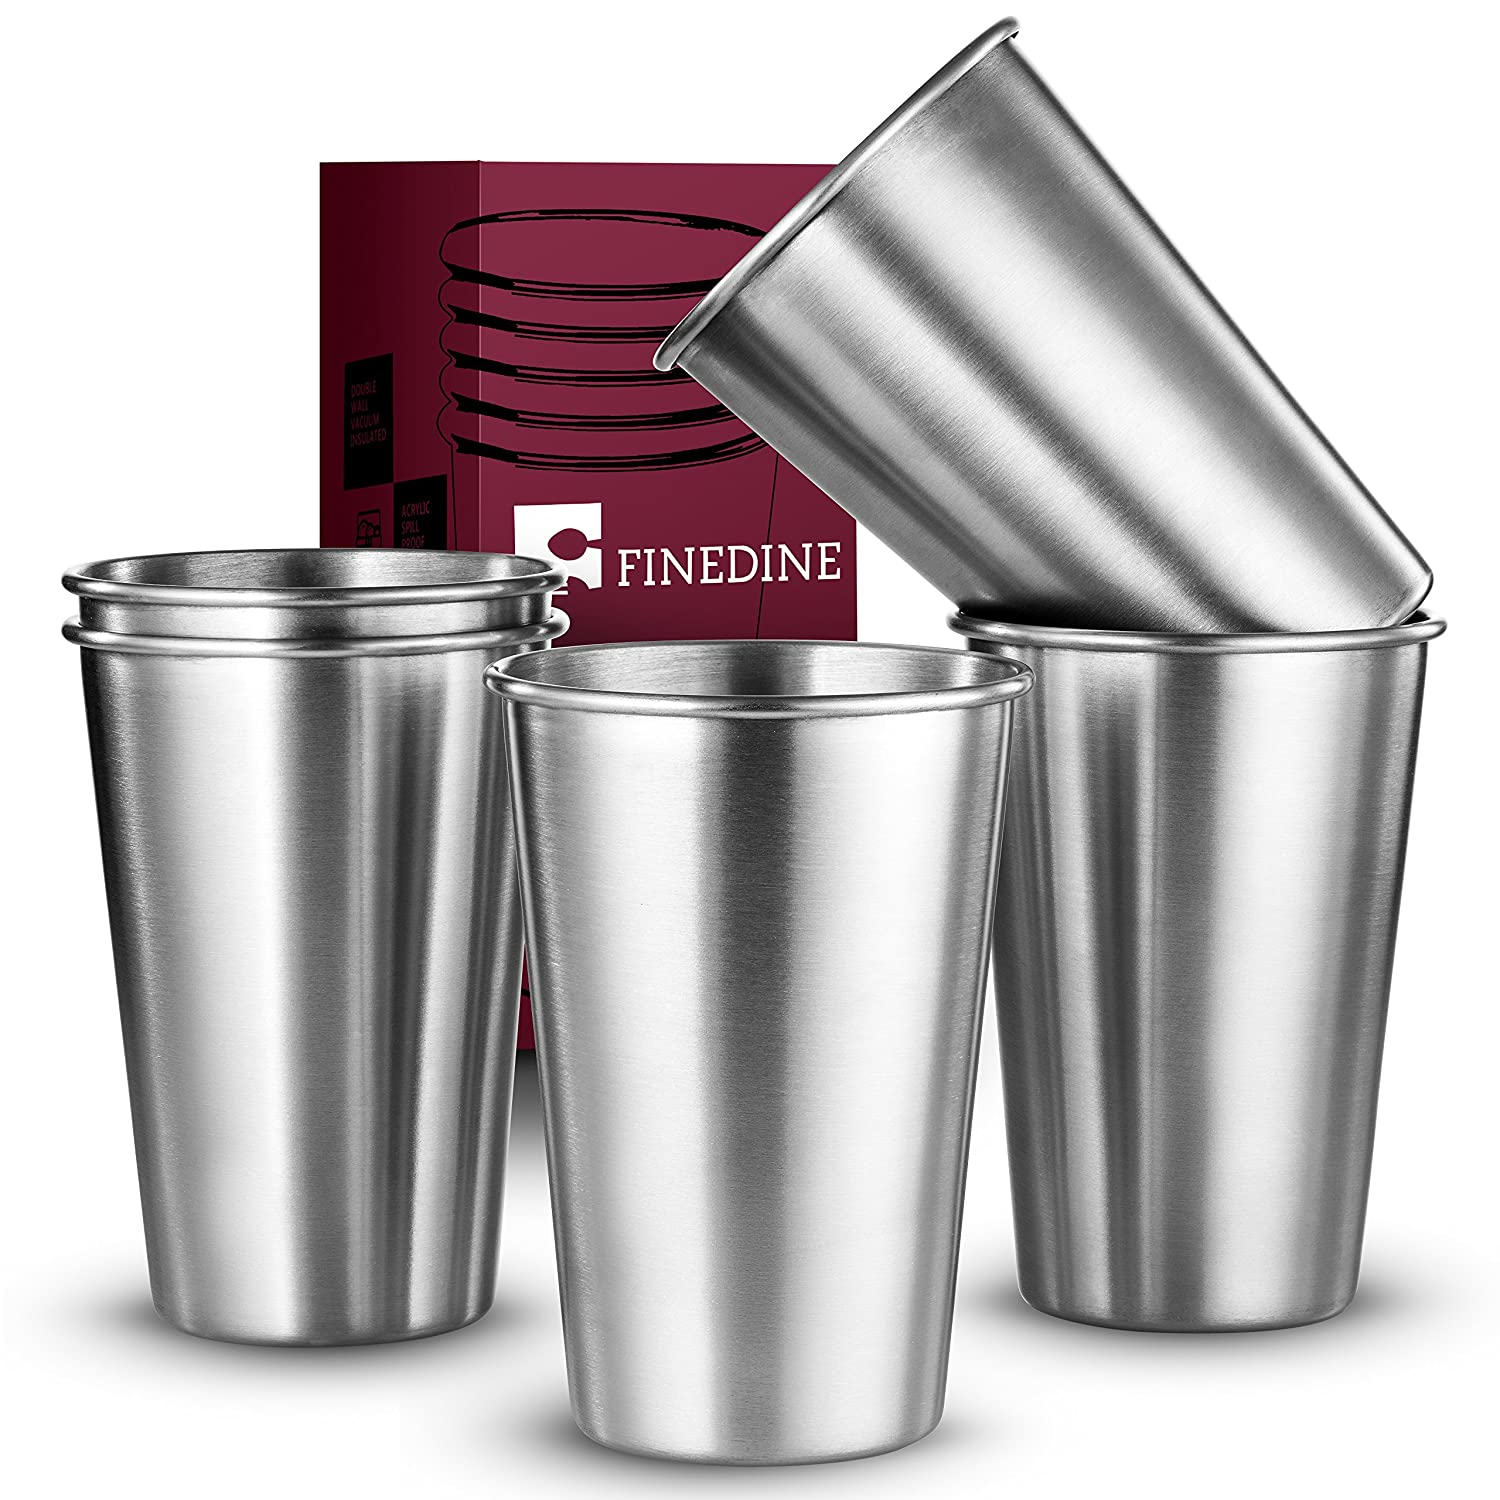 FineDine Premium Fees free!! Grade Stainless Steel Large discharge sale Cups Pint Water Tumblers